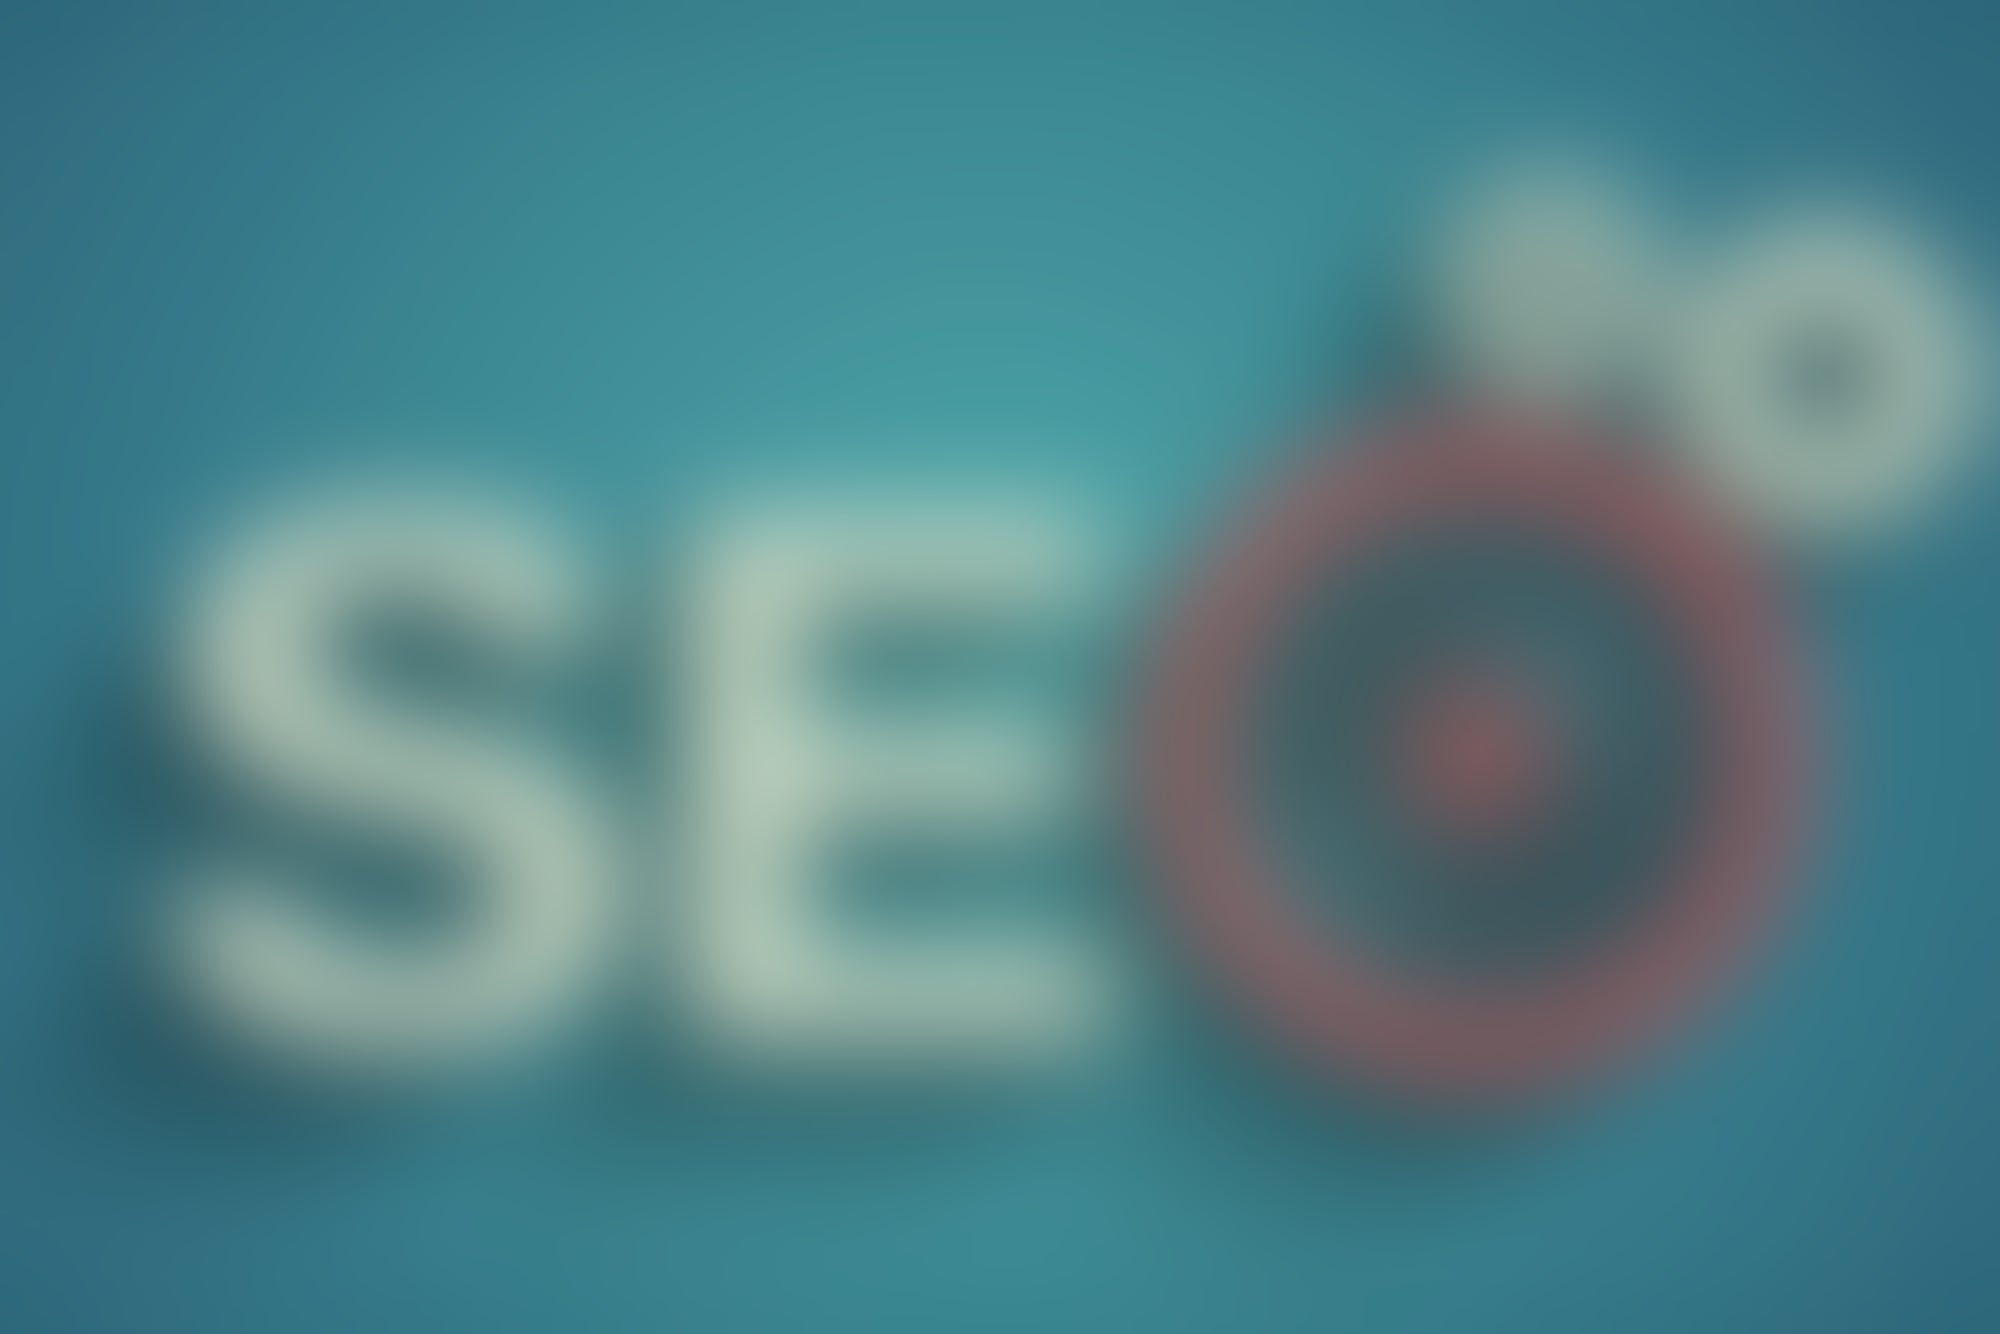 SEO for Business Explained: A Conversation With Rand Fishkin